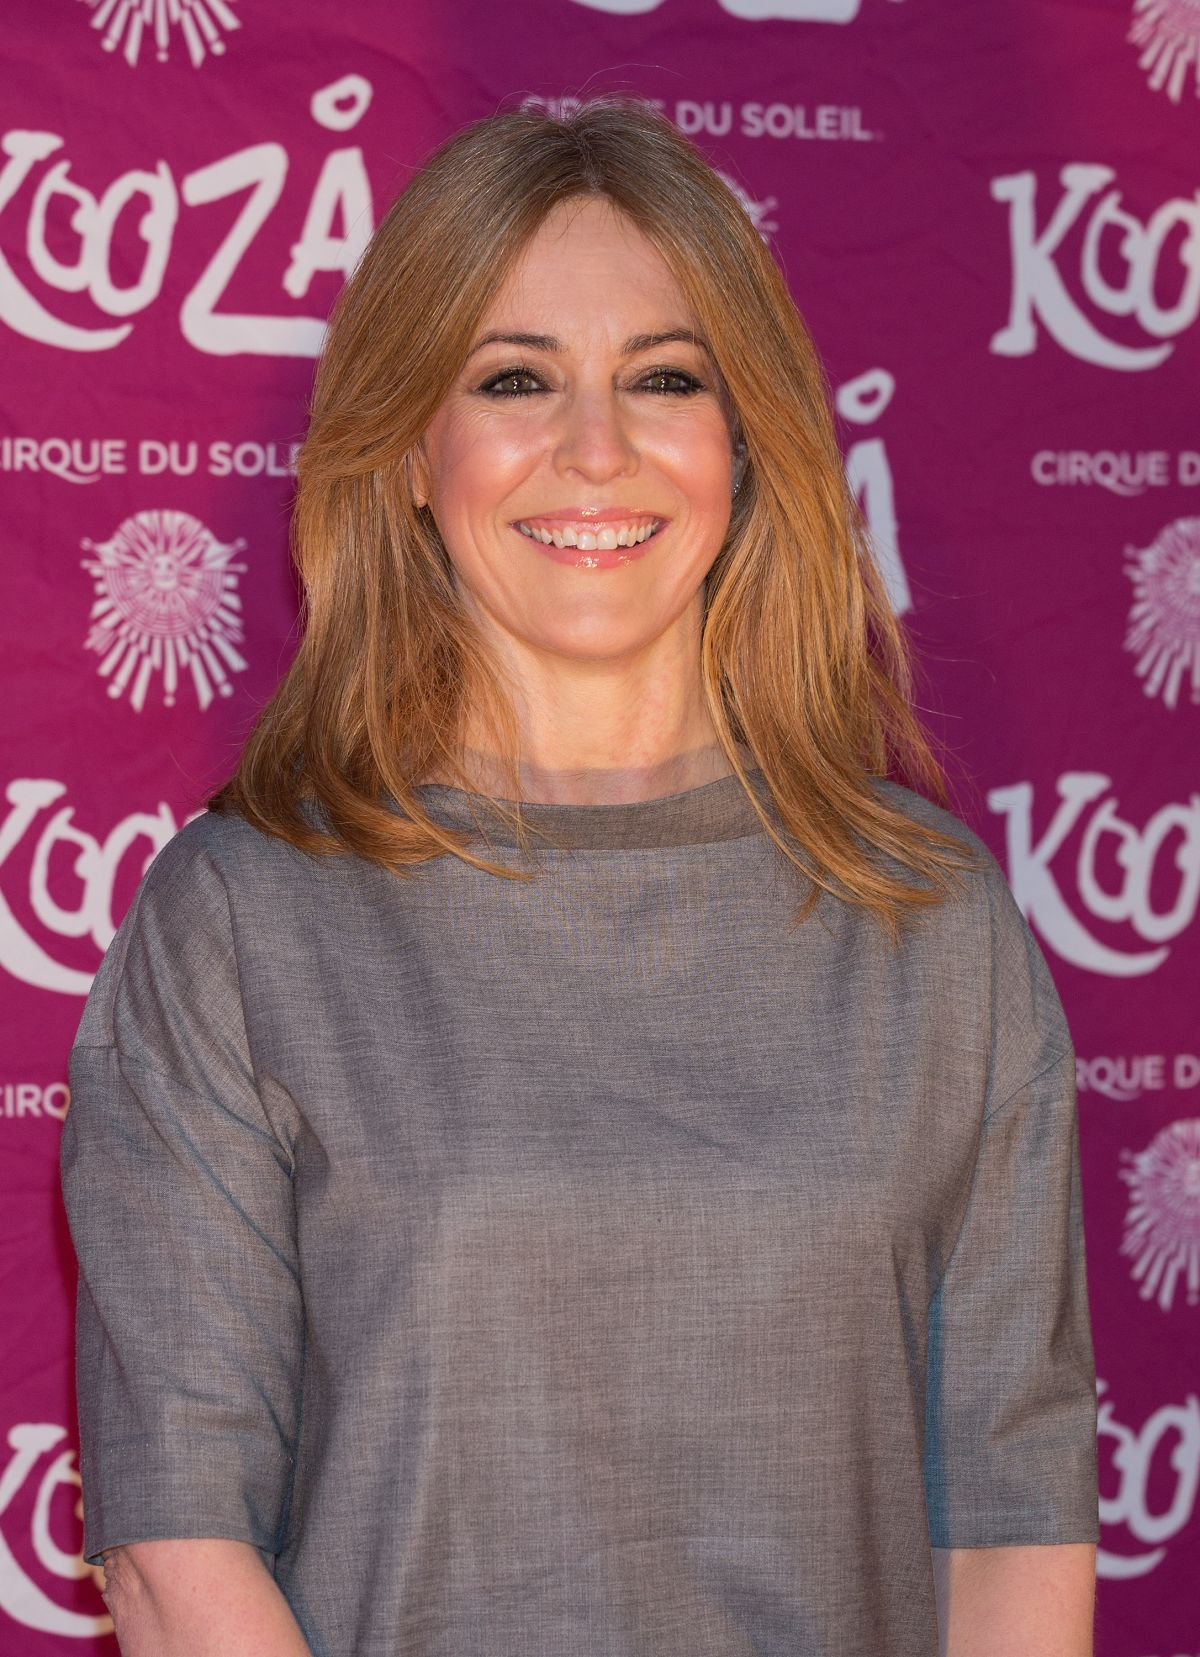 HELEN FOSPERO at Kooza by Cirque du Soleil VIP Performance in London